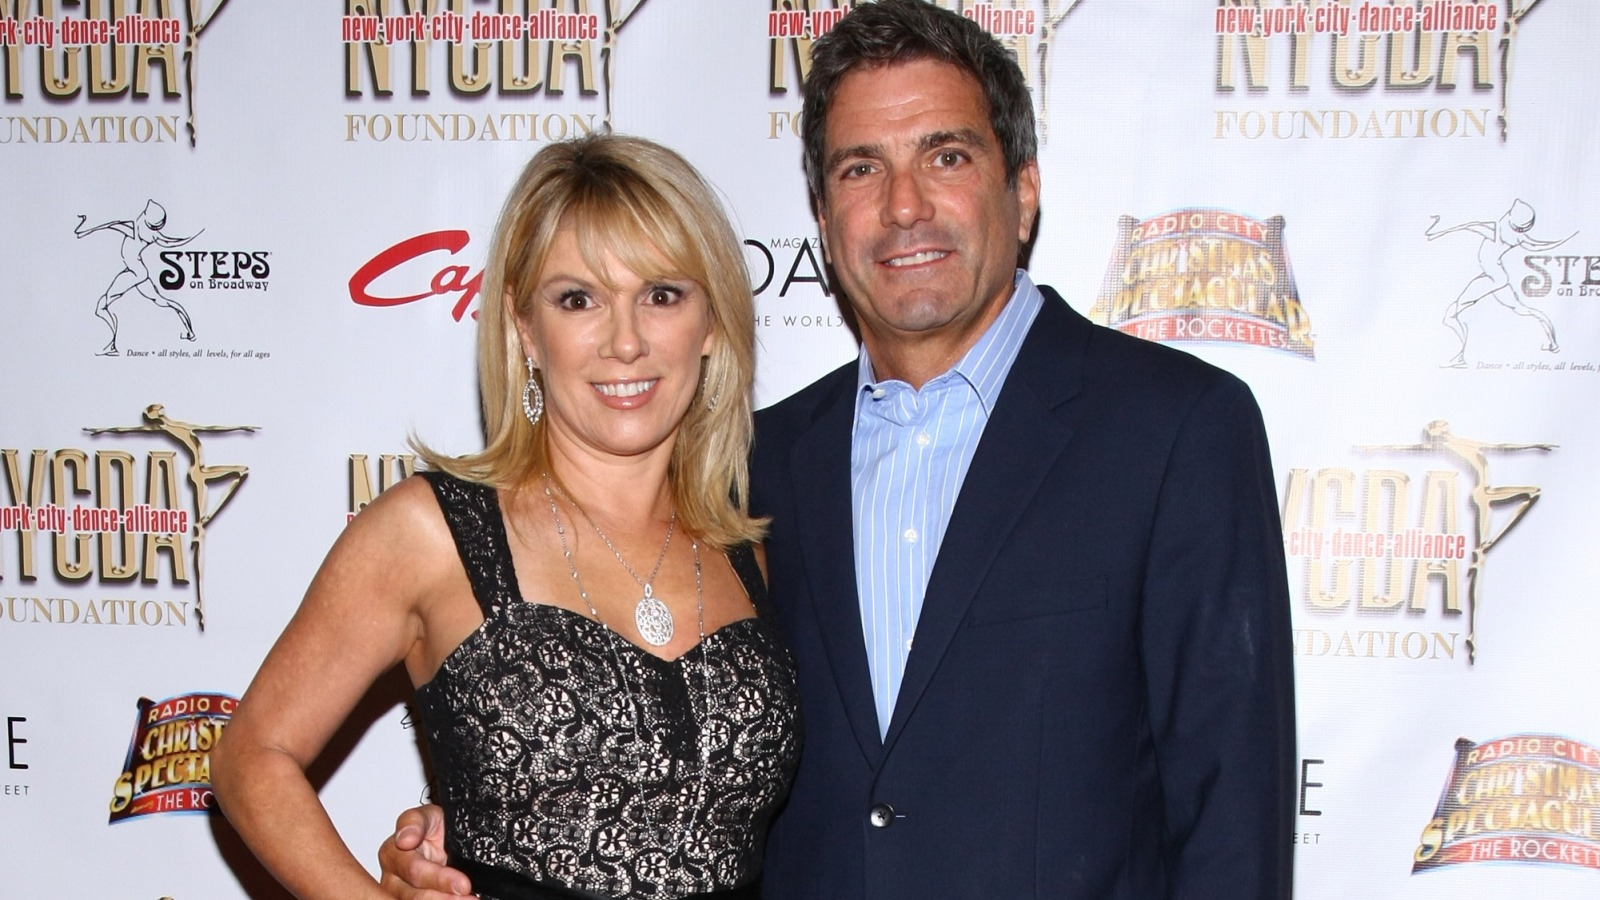 The unsaid breakups in Real Housewives history